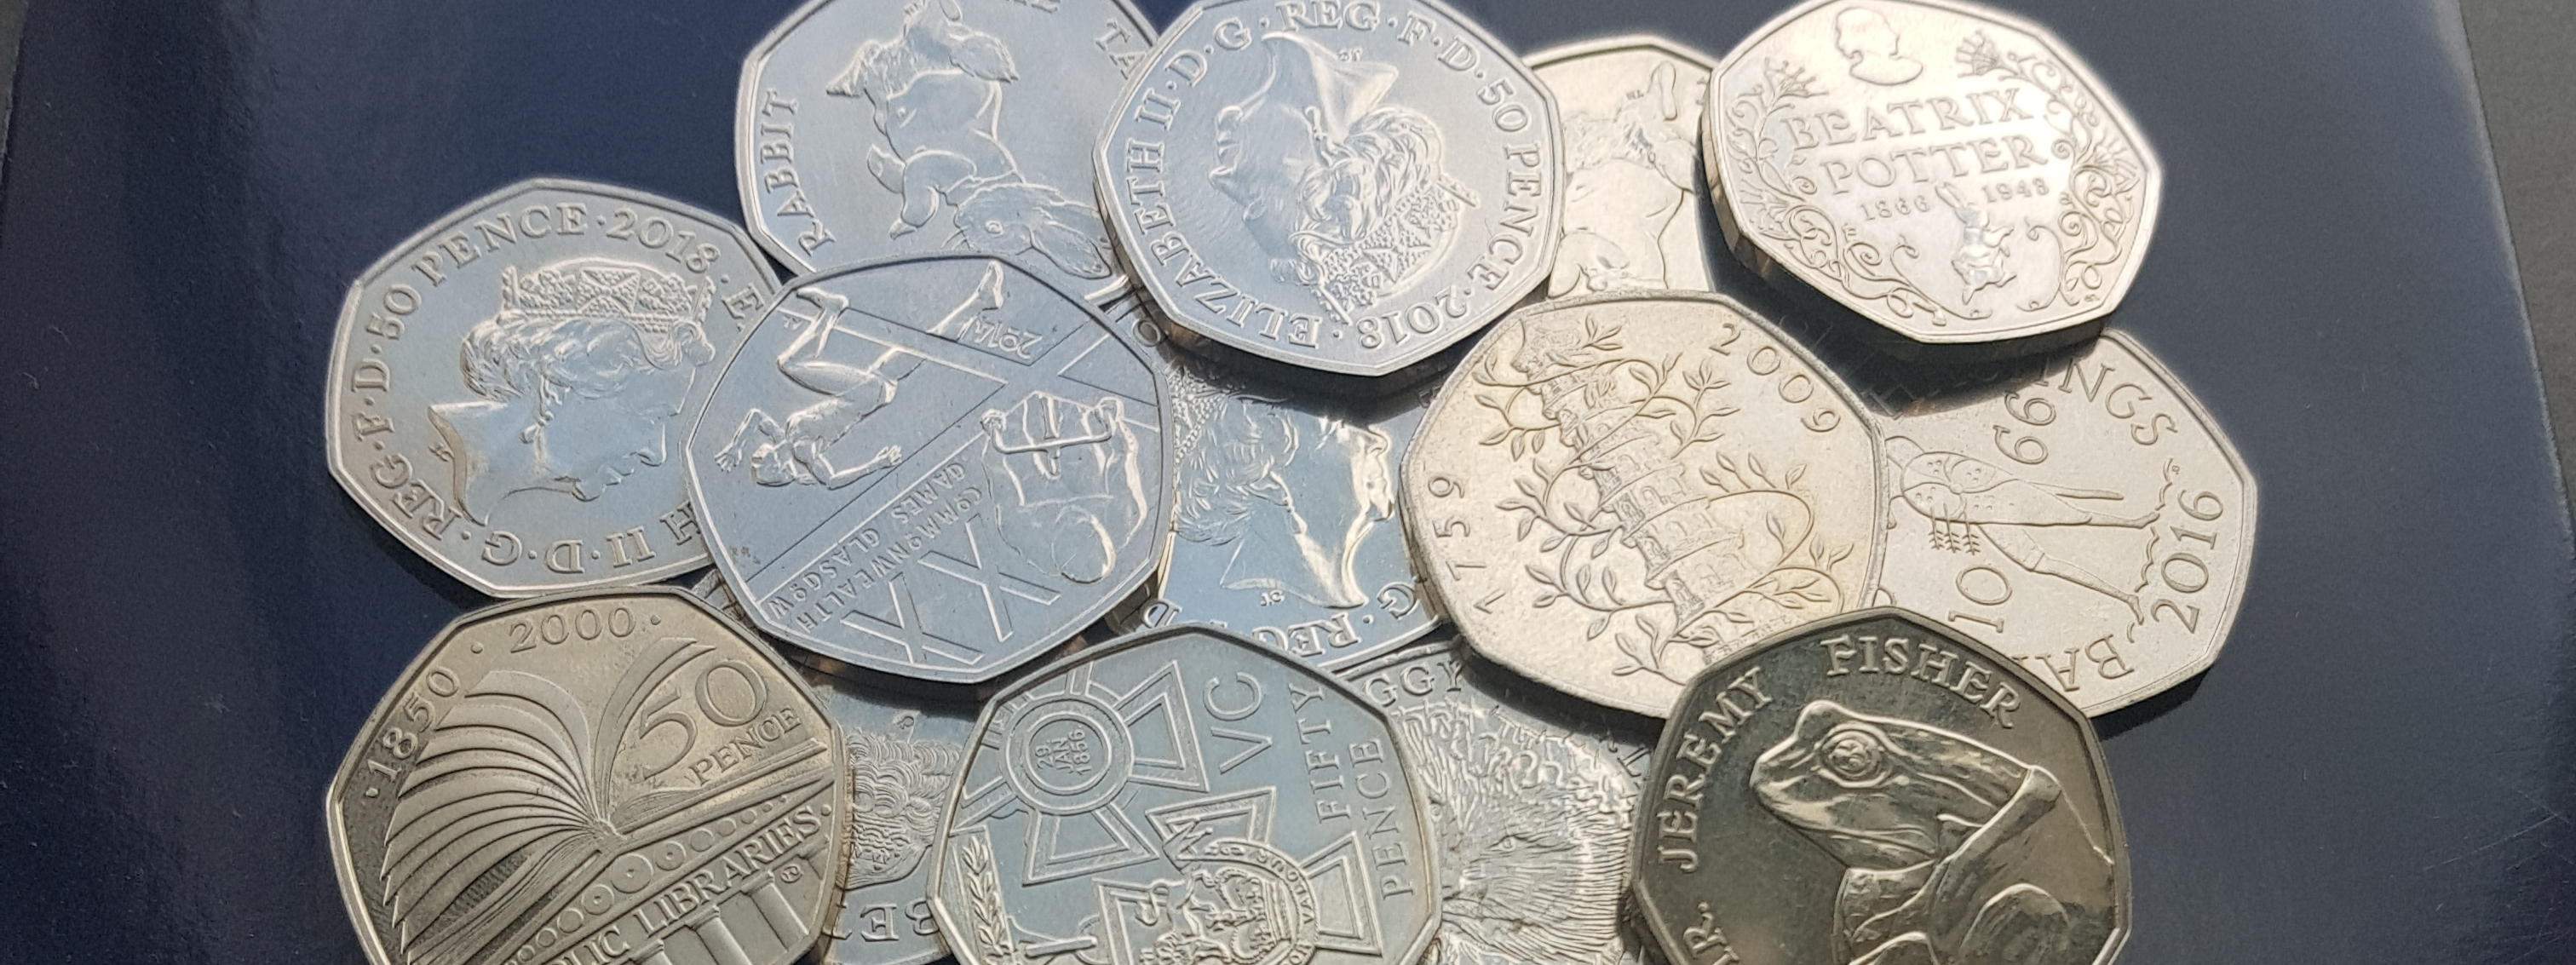 How rare is my 50p and how much is it worth? - Change Checker